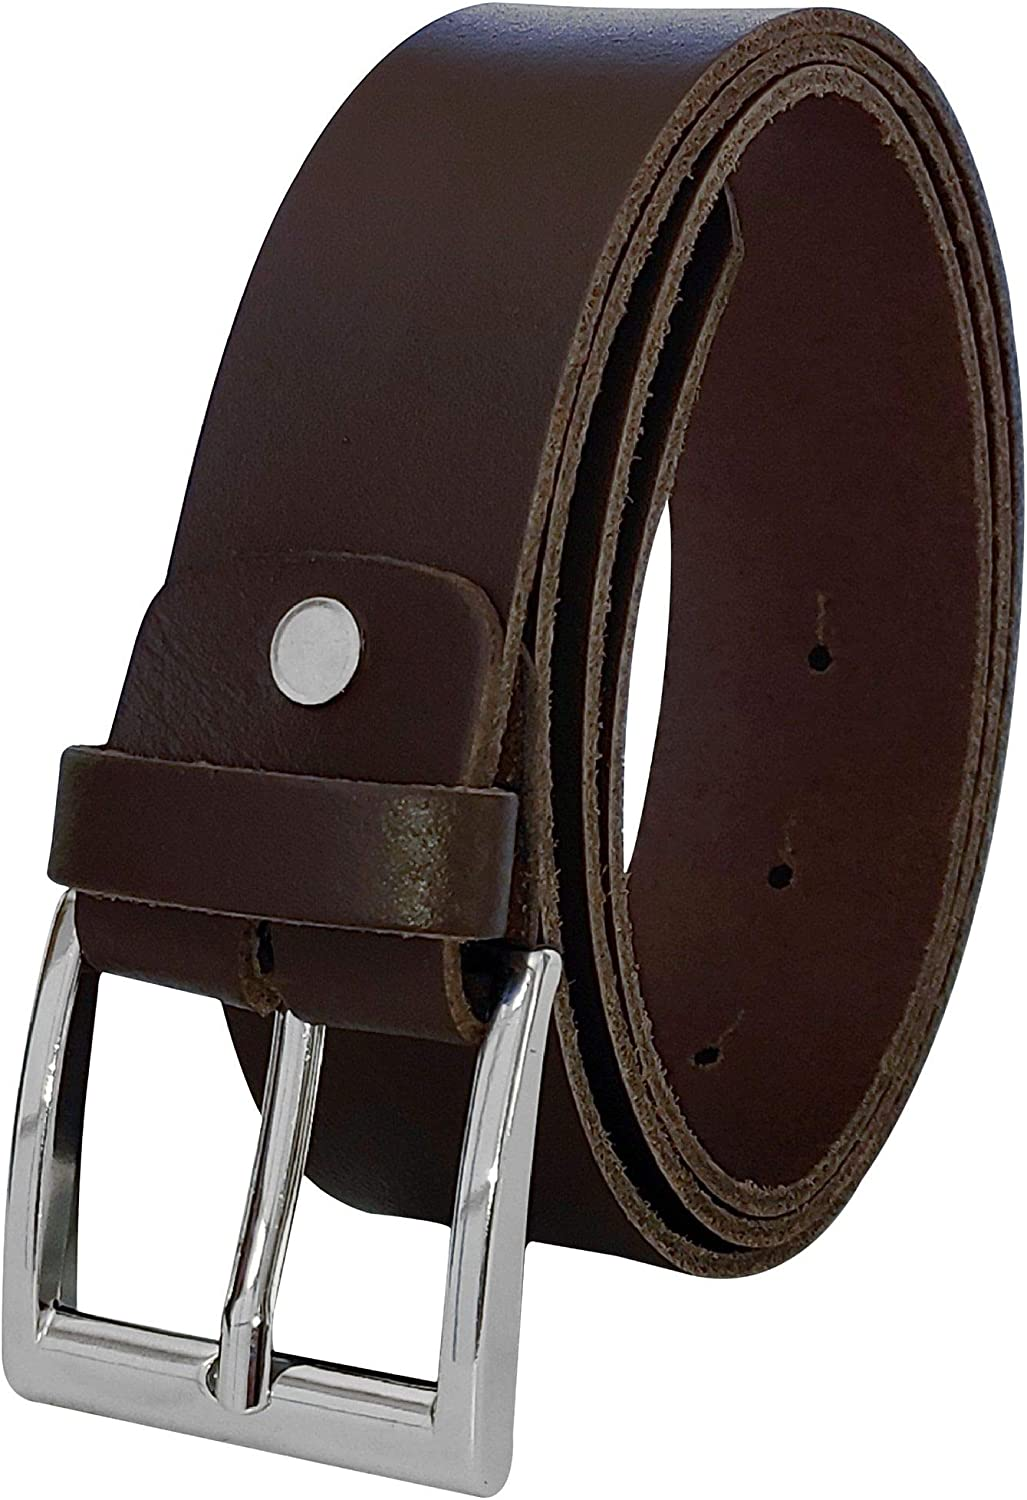 FRONHOFER classic Bargain men's belt 38mm bel silver New Shipping Free Shipping wide leather 100%